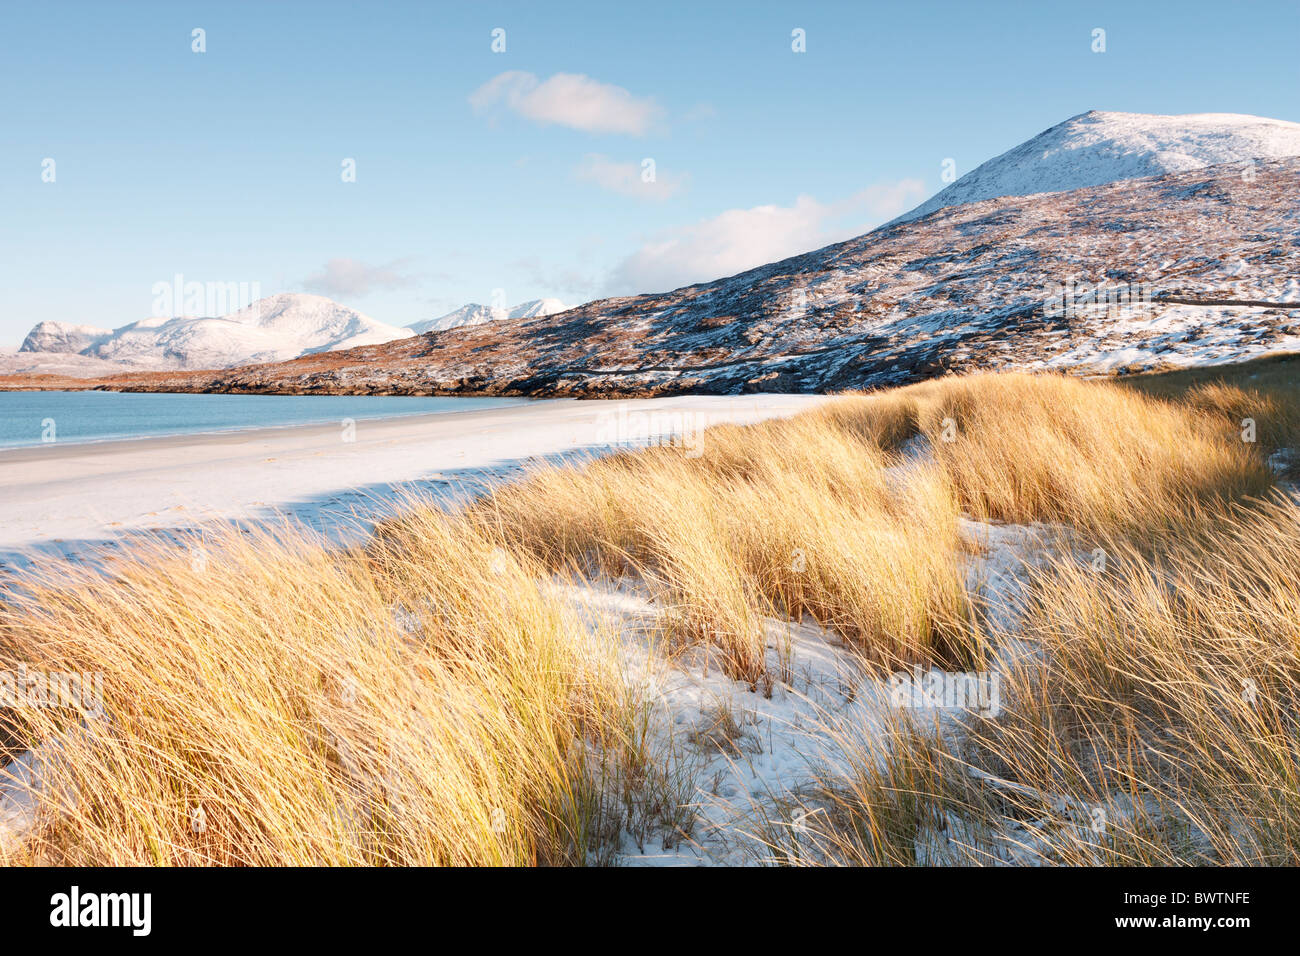 Maram grass and a layer of snow on the dunes at traigh Rosamol on the isle of Harris with Ben Dubdh and the Harris - Stock Image